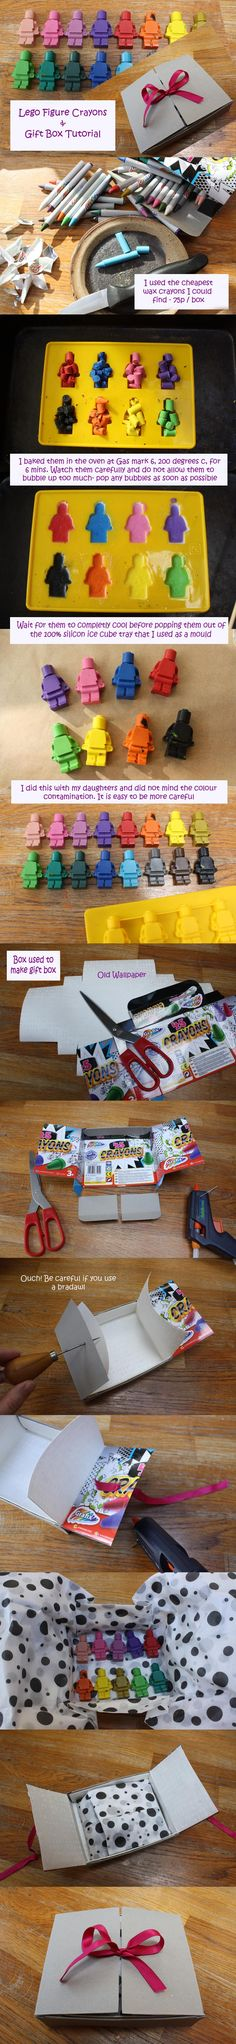 Make It: Lego Man Crayons - Tutorial #kids